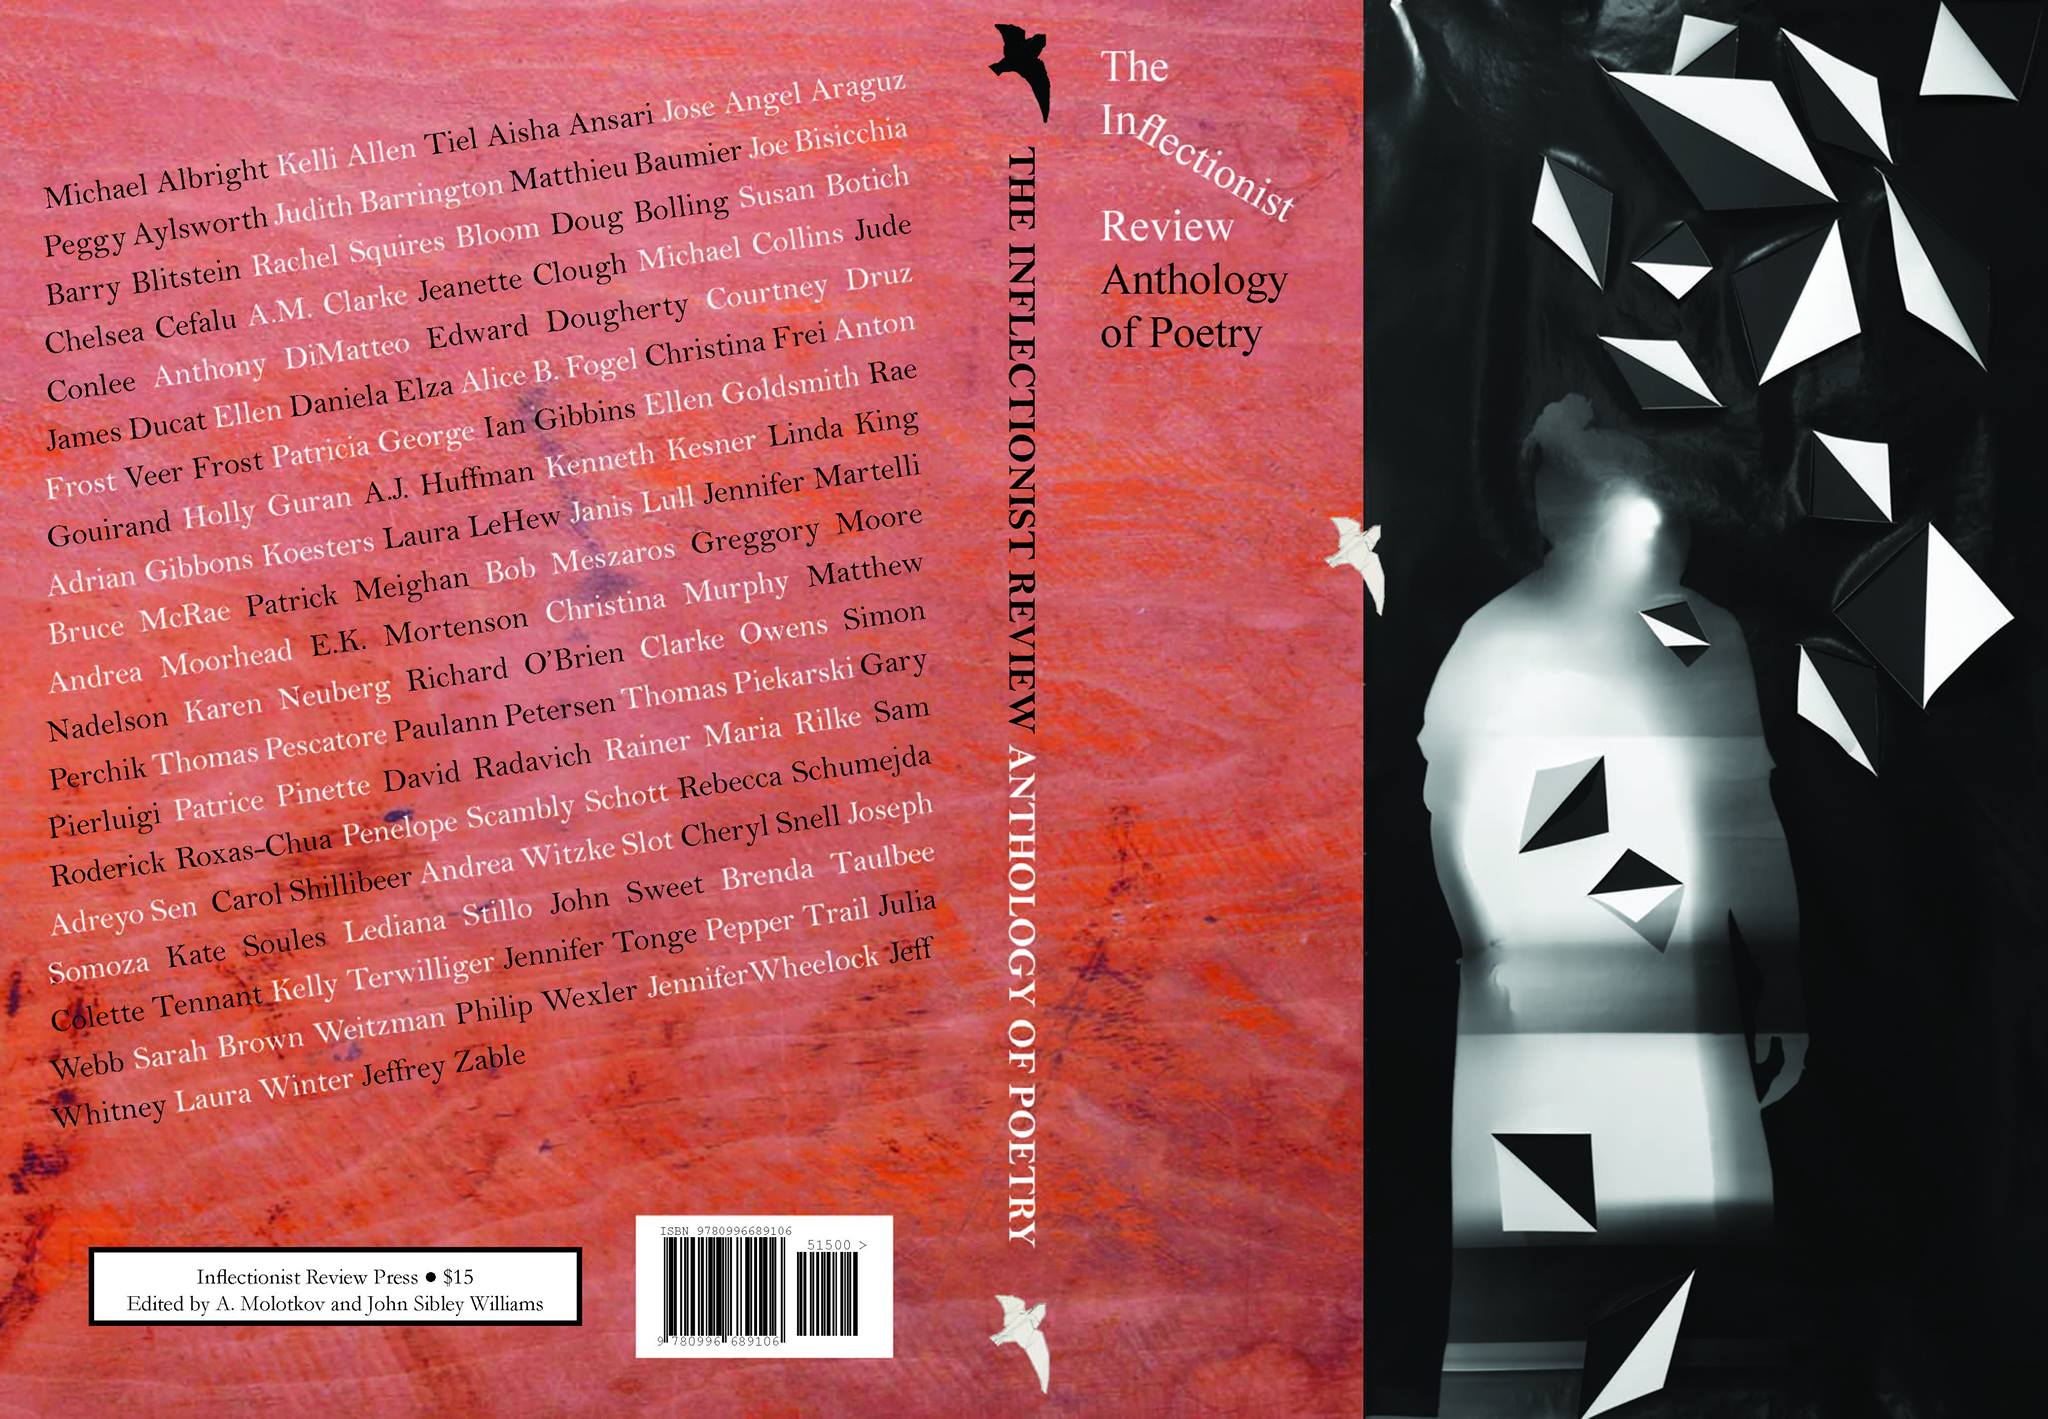 Inflectionist Review Anthology of Poetry